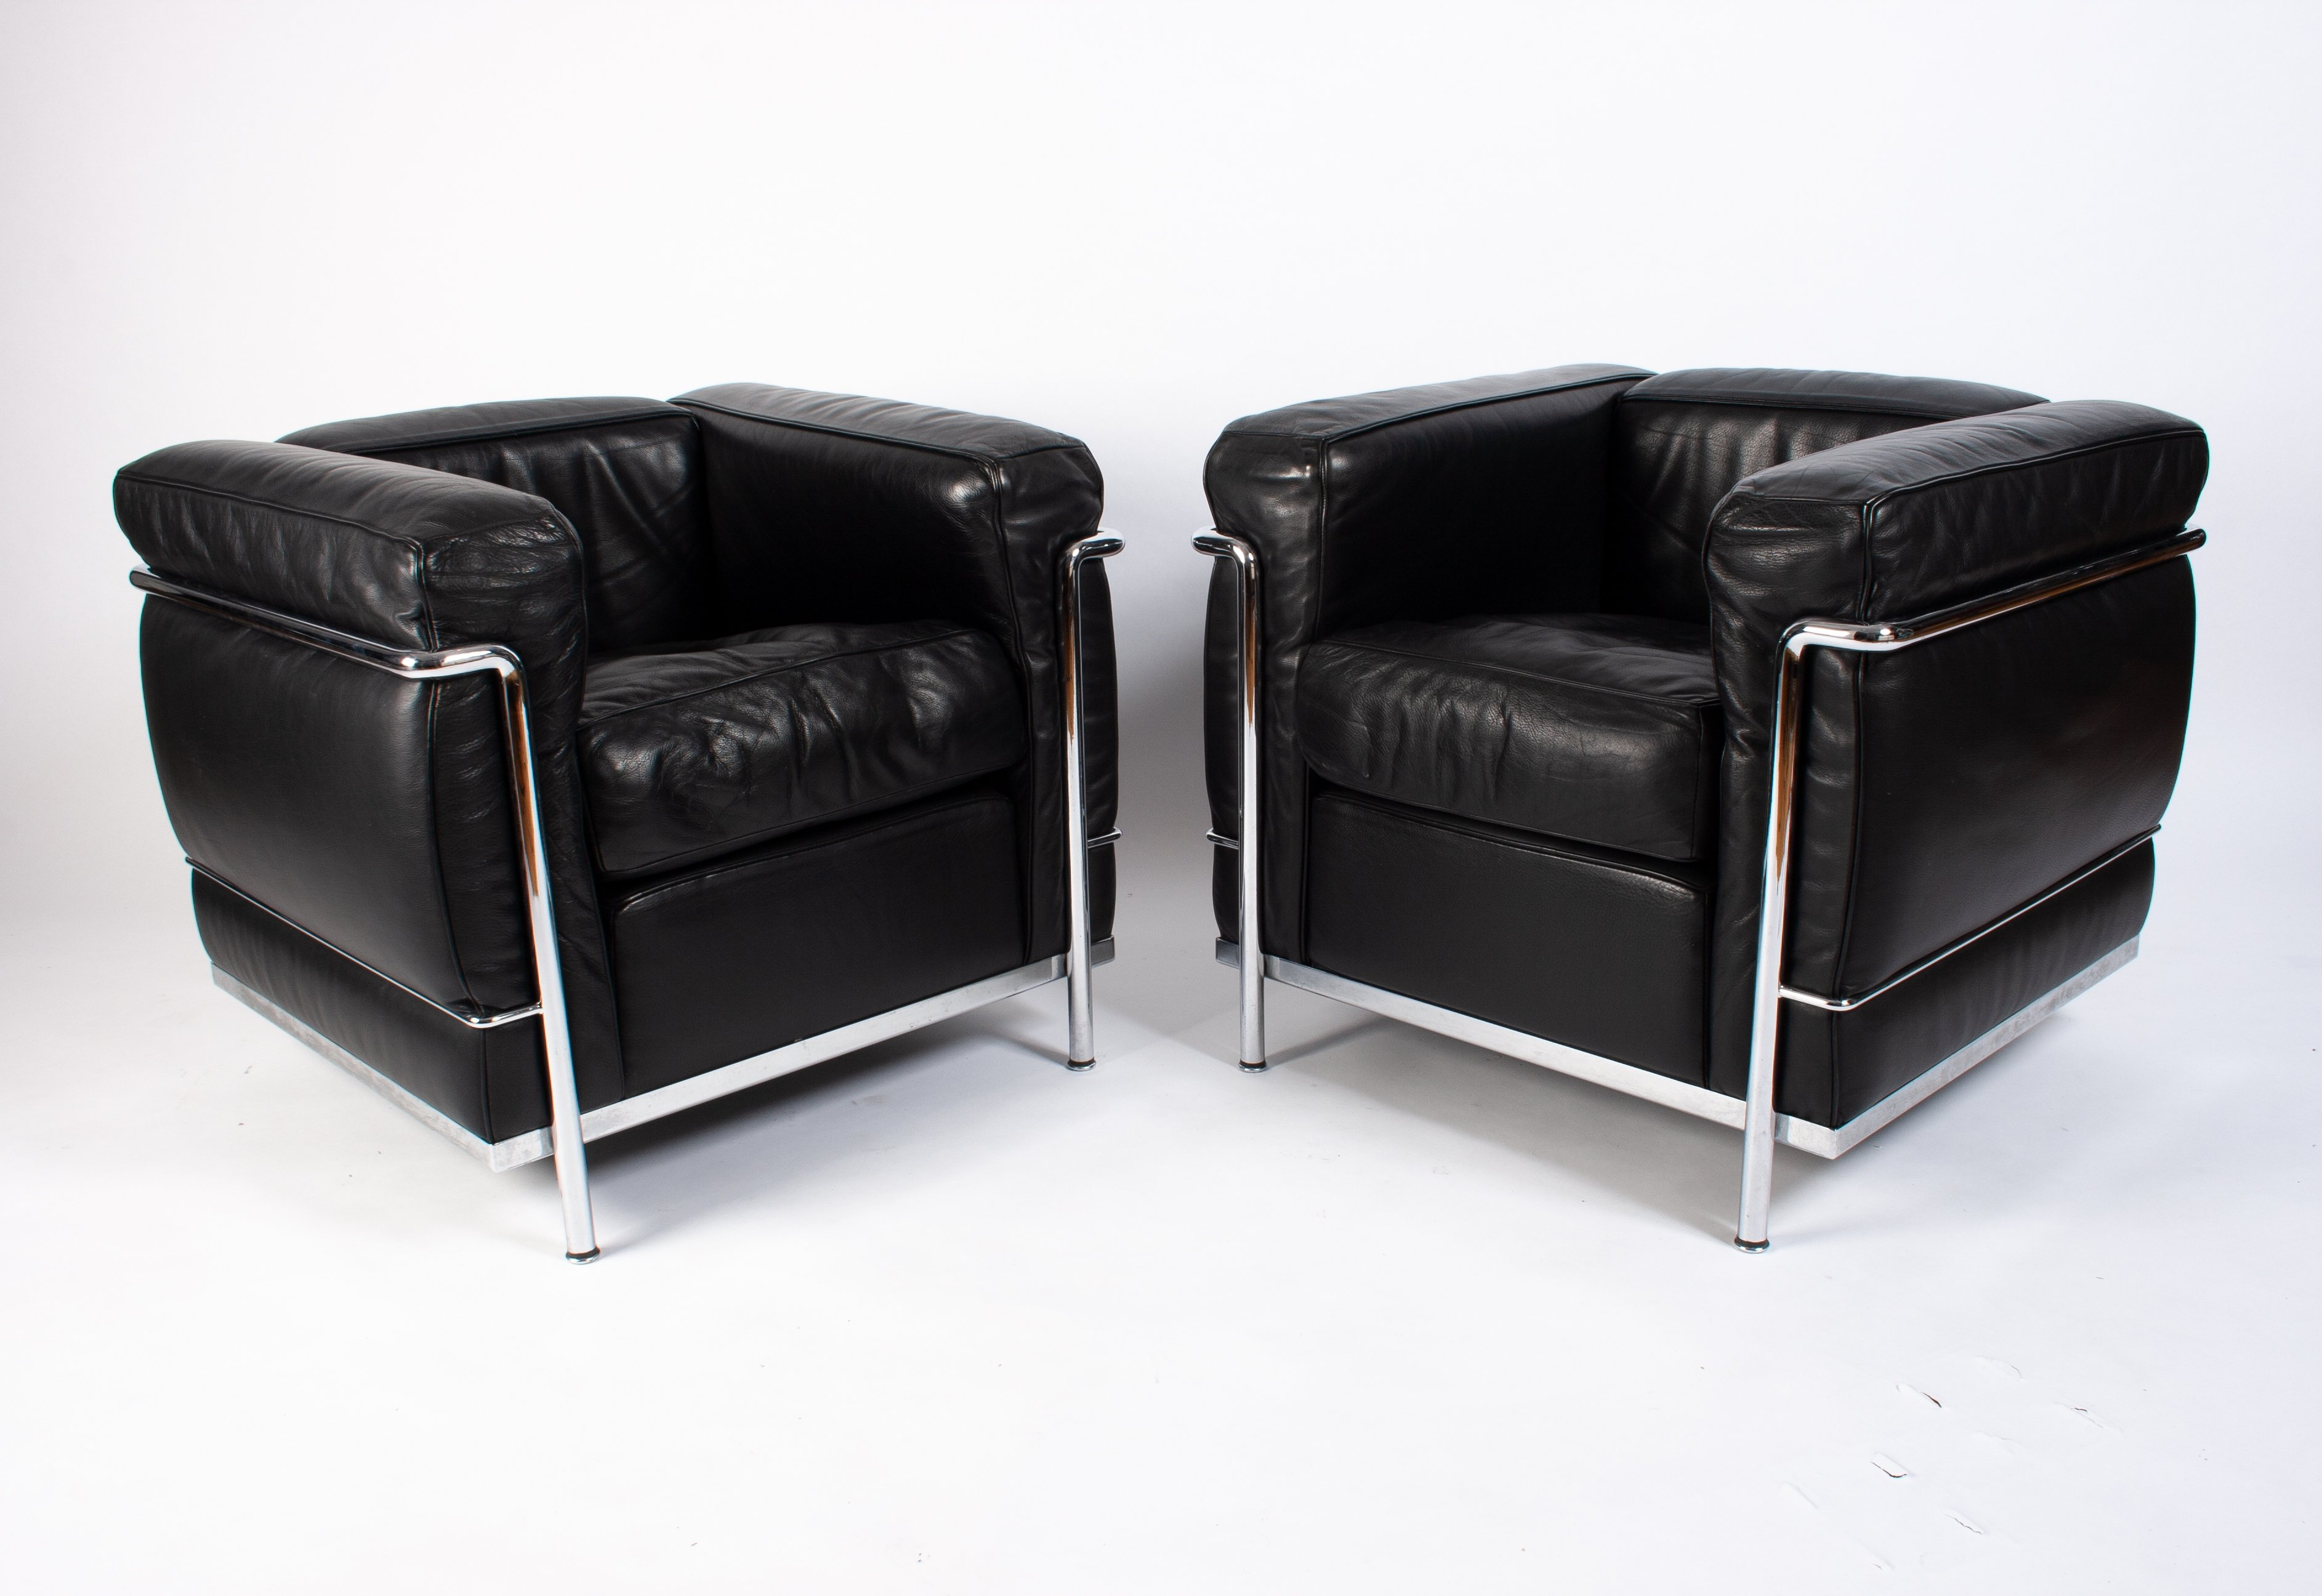 Wondrous Pair Of Black Leather Chrome Lc2 Lounge Chairs By Le Theyellowbook Wood Chair Design Ideas Theyellowbookinfo